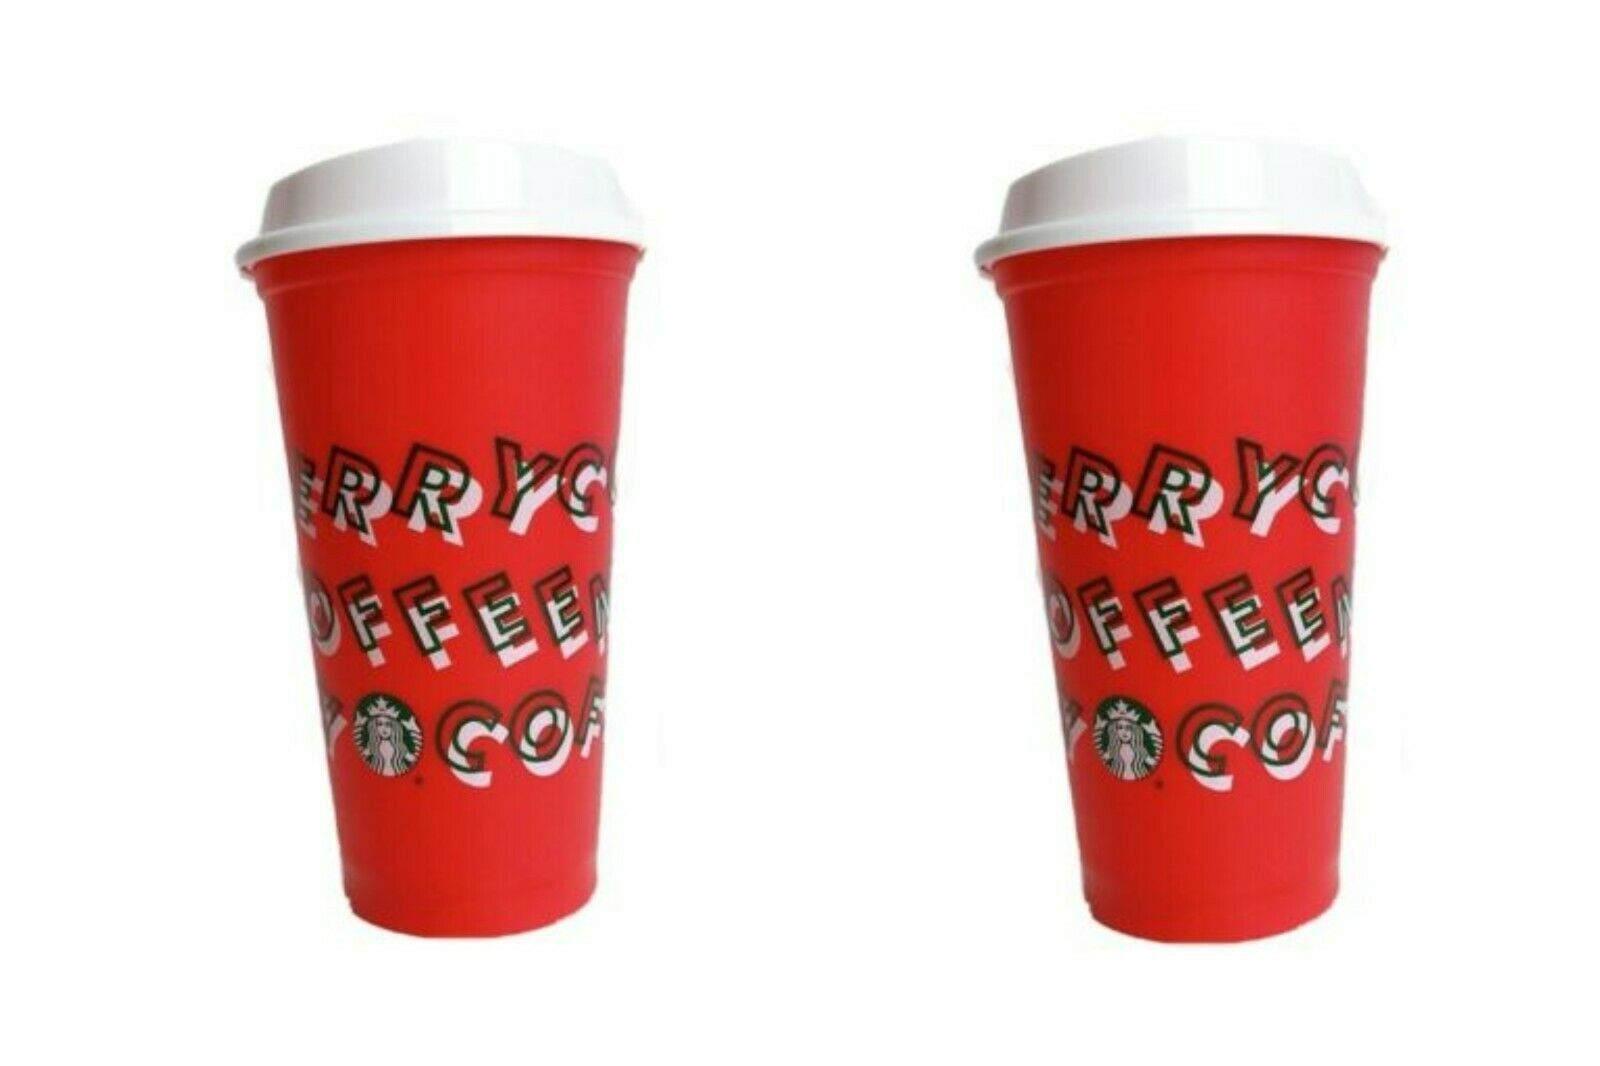 Primary image for 2019 Starbucks RED Merry Coffee Christmas 16oz Limited Edition Reusable Hot Cup